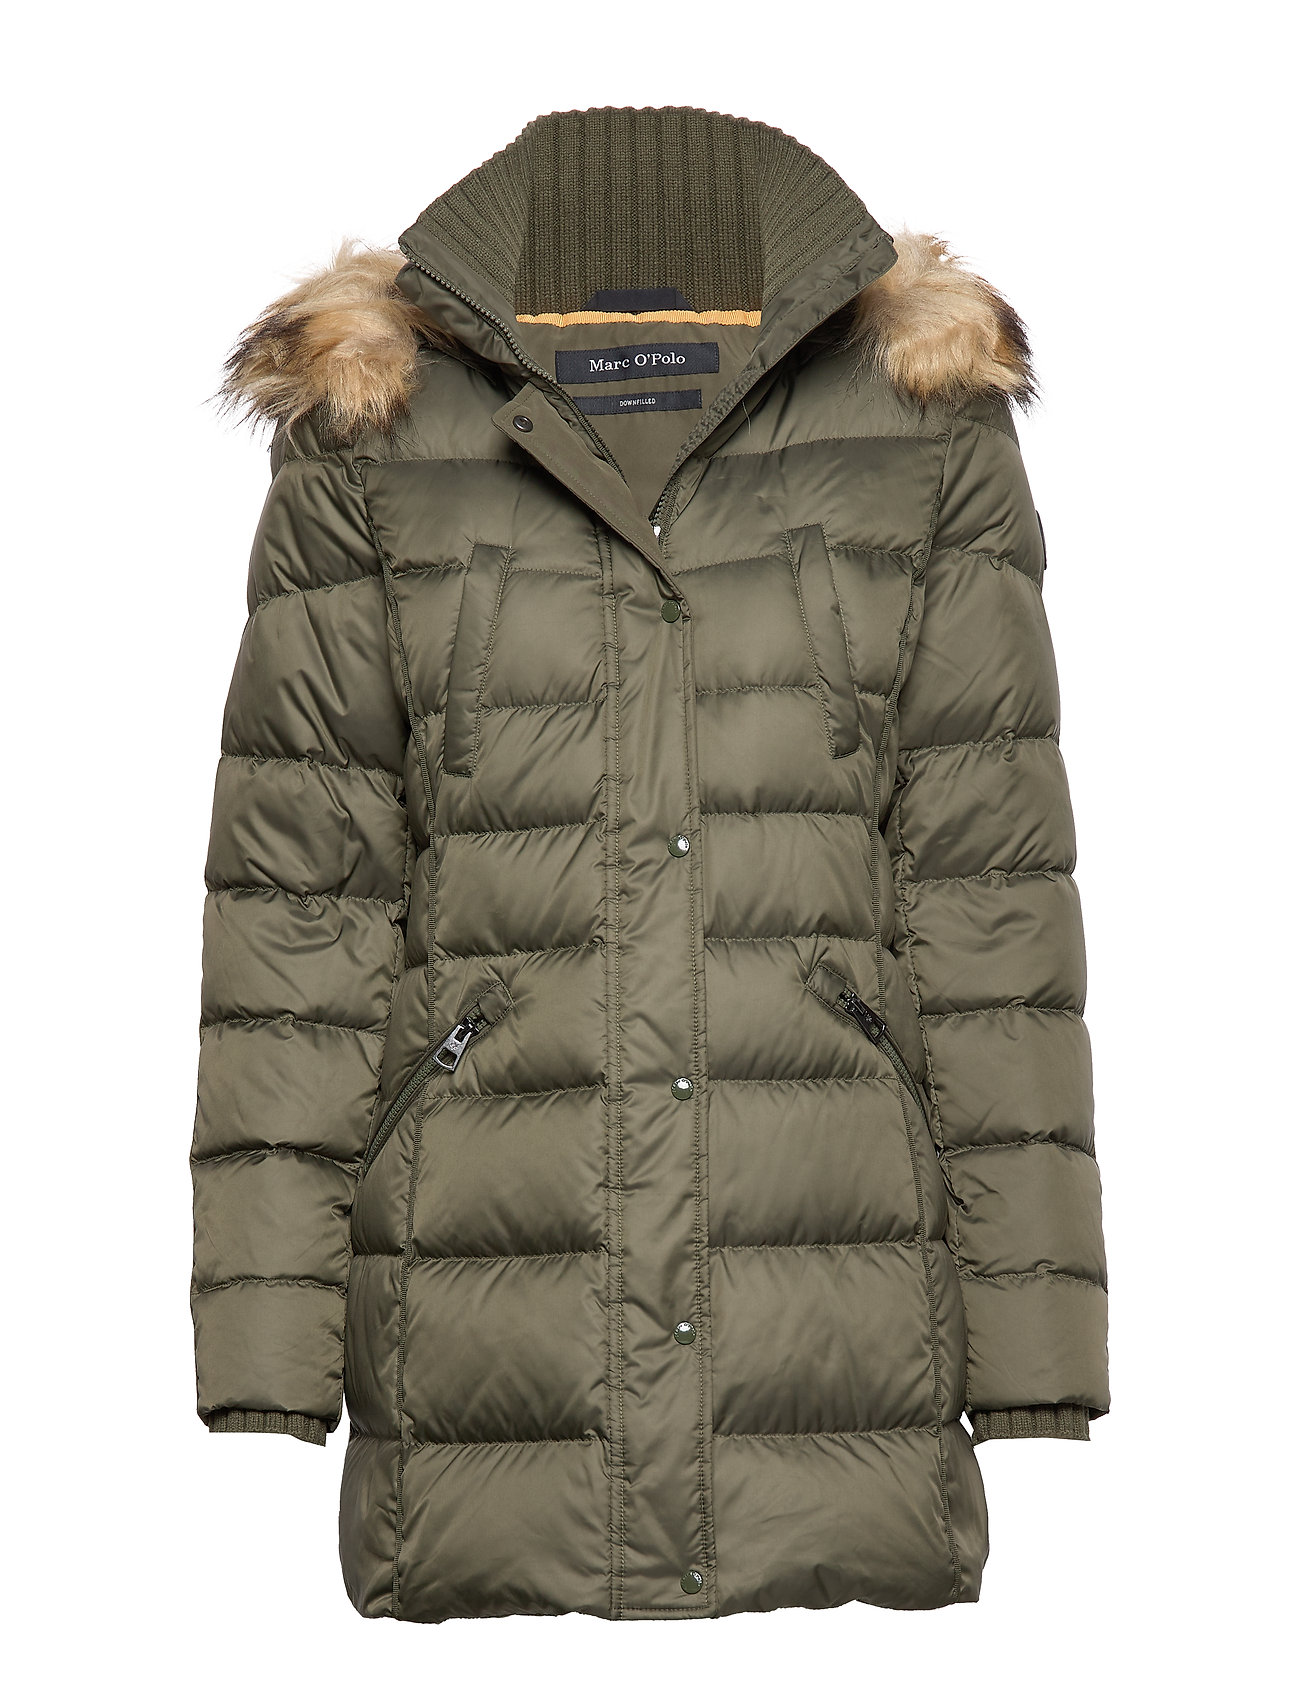 Marc O'Polo Coat, down filled, parka, detachabl - WORKERS OLIVE